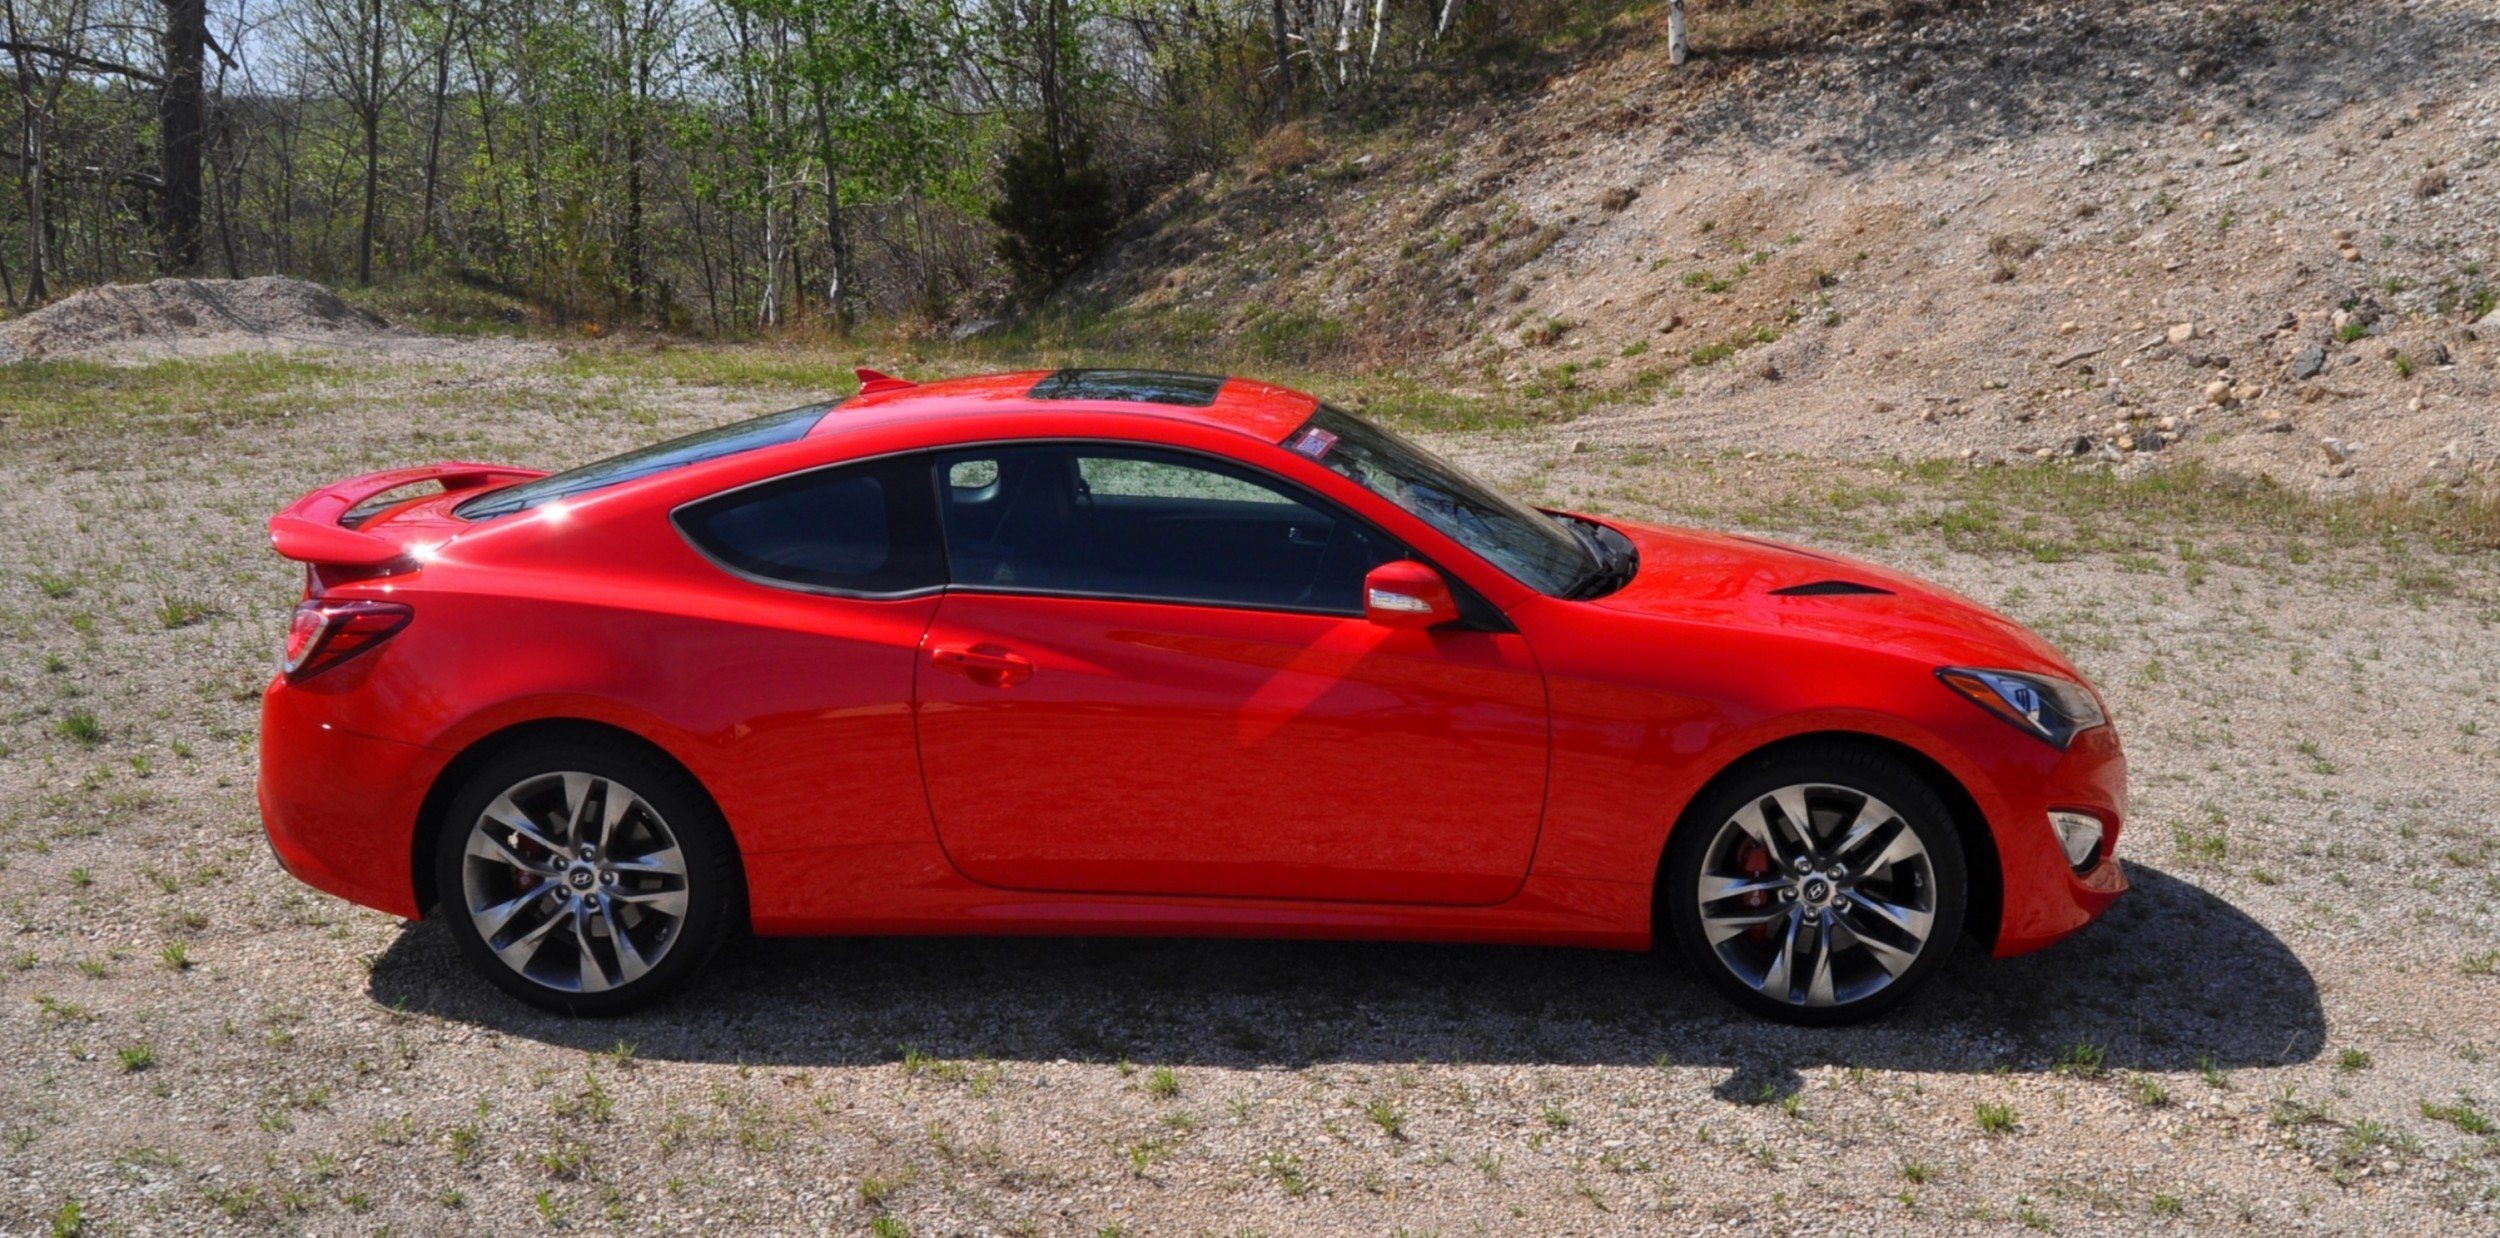 2014 hyundai genesis coupe 3 8l r spec road test review. Black Bedroom Furniture Sets. Home Design Ideas